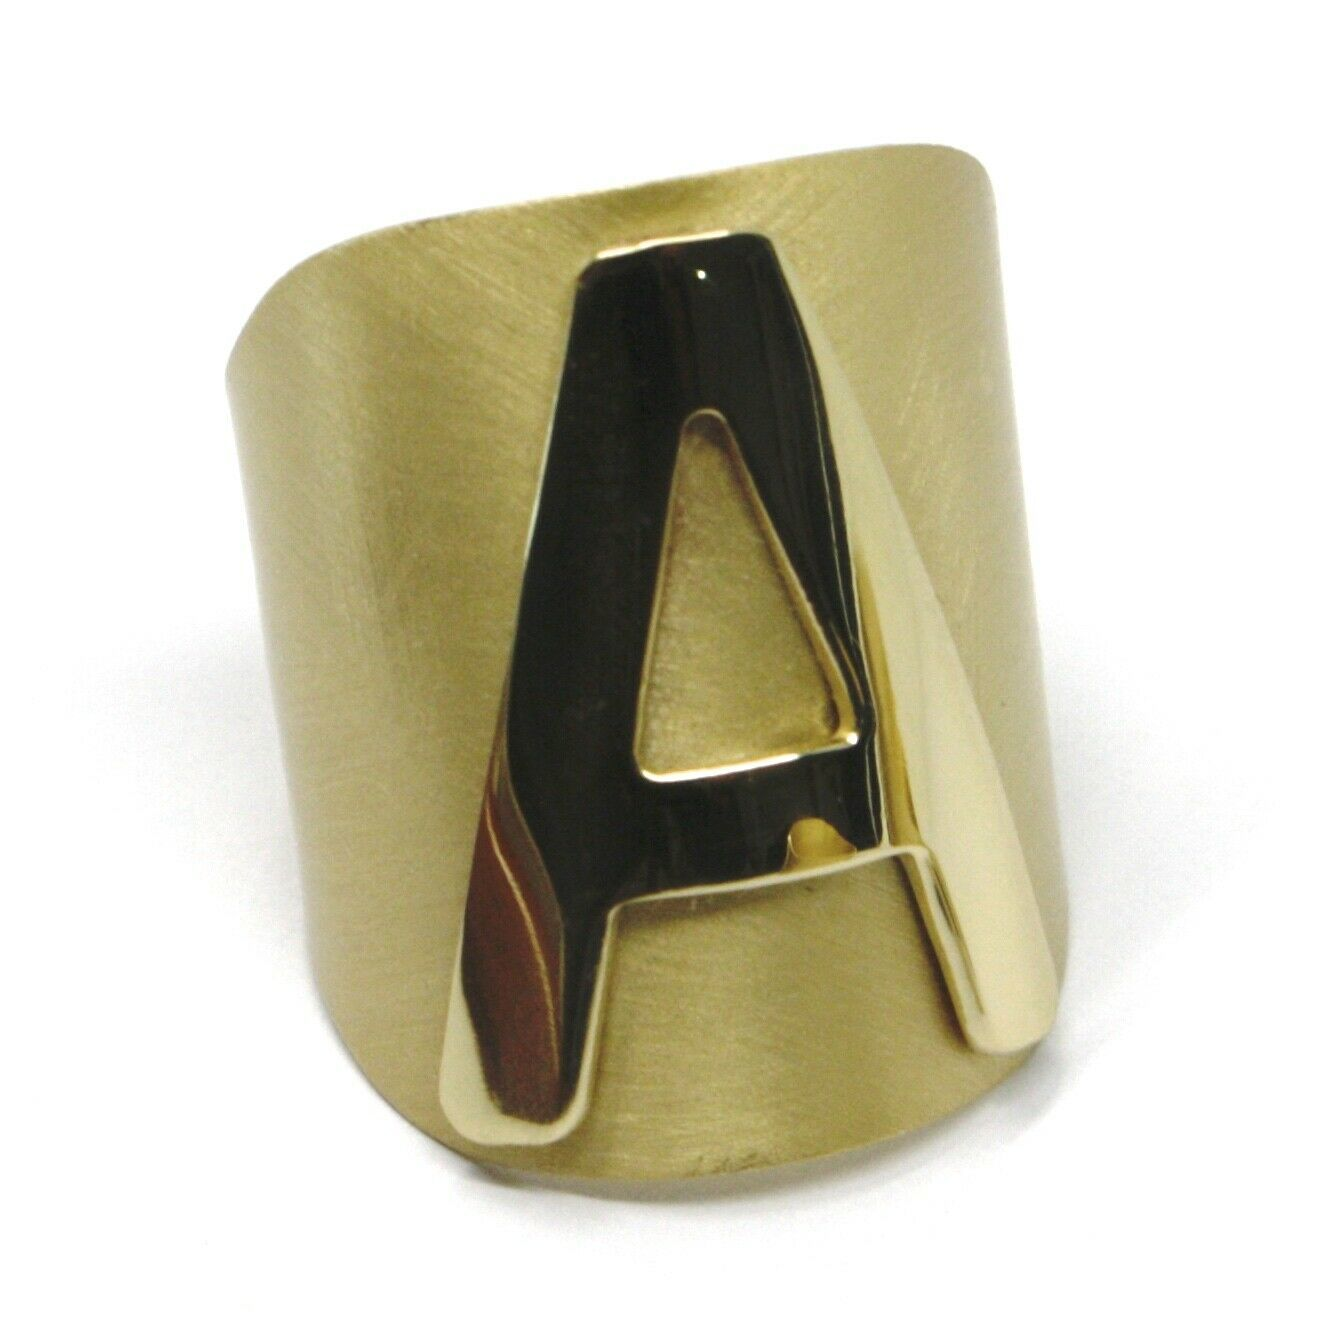 SOLID 925 STERLING SILVER BAND RING, BIG LETTER A, YELLOW SATIN FINISH, SIZABLE